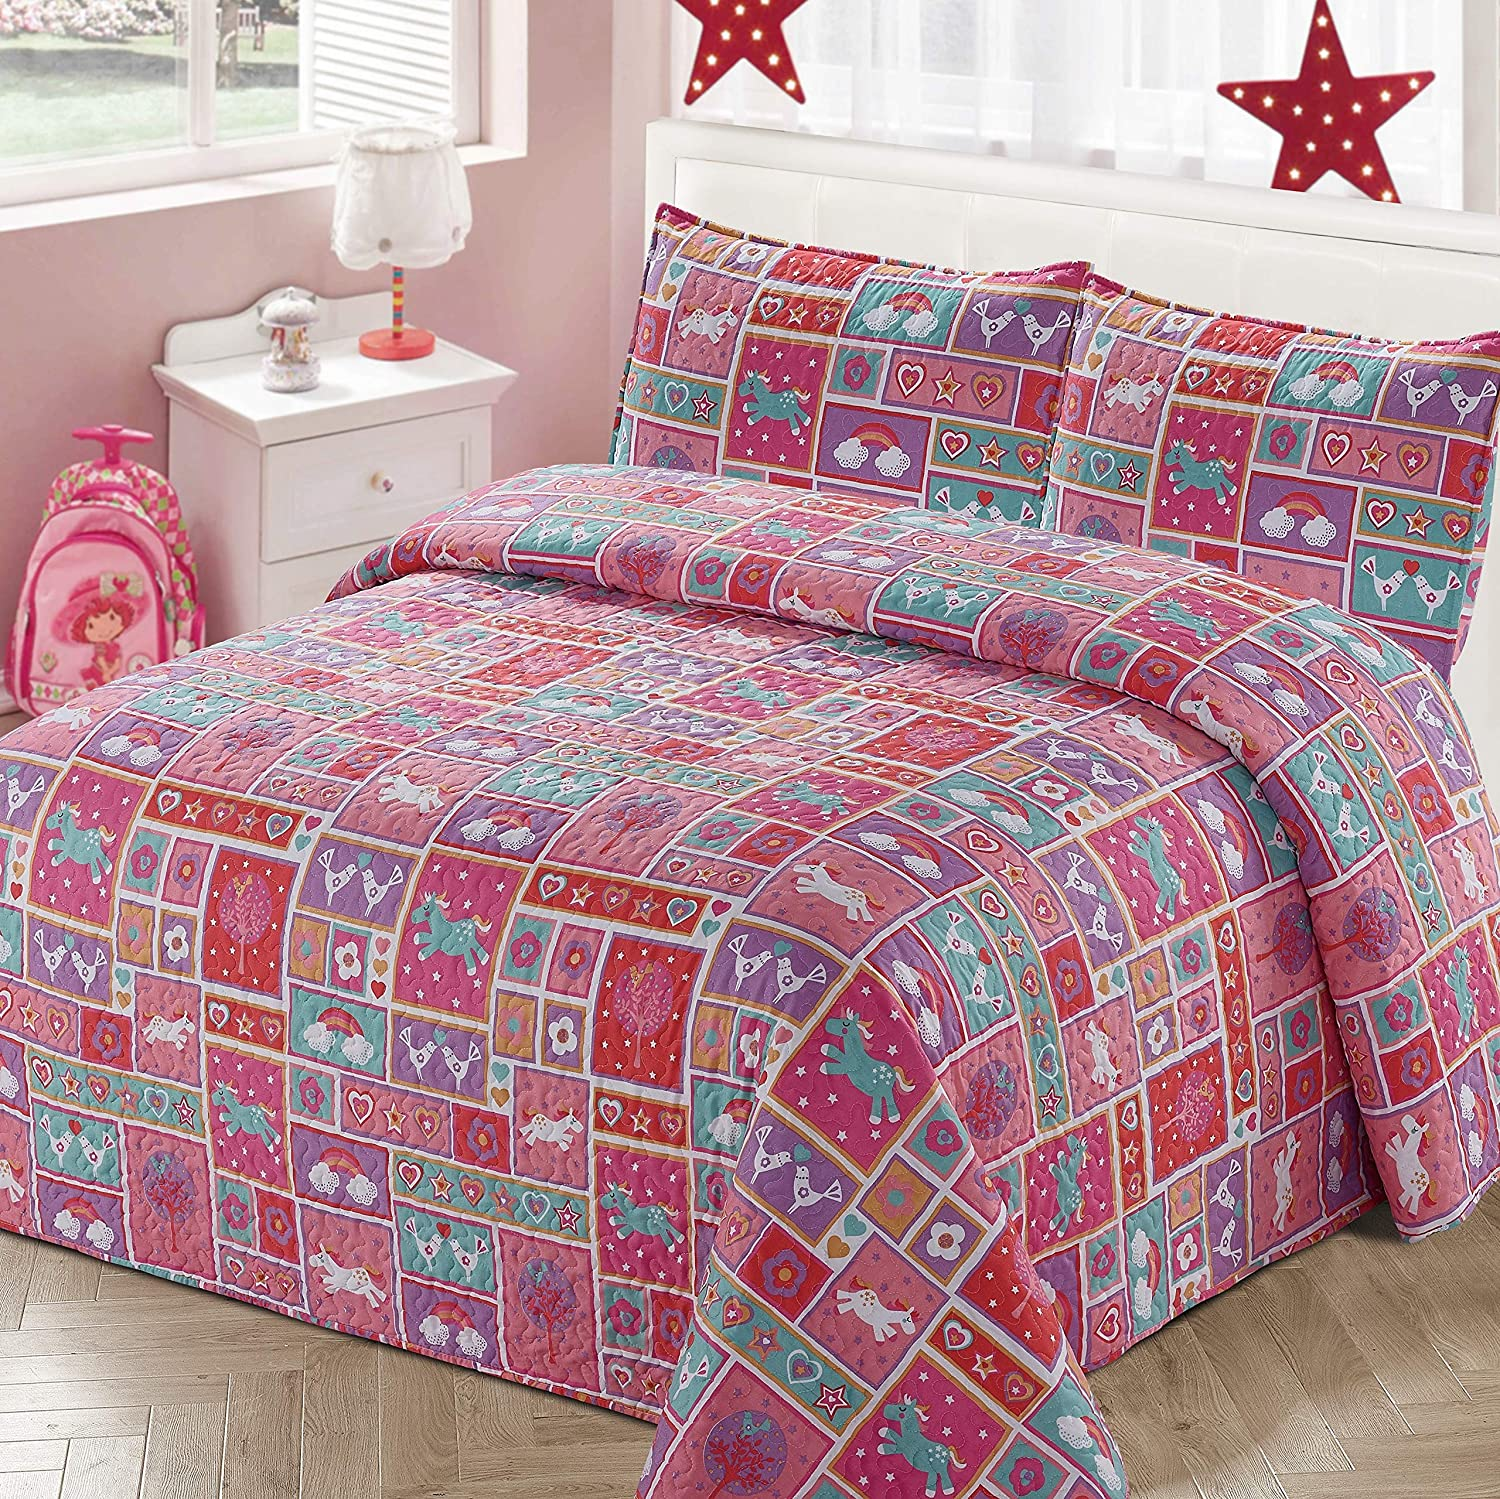 Kids Zone Home Linen 2pc Twin Bedspread Coverlet Quilt Set for Girls Pink Red Purple Squares Unicorns Birds Hearts Rainbow Stars